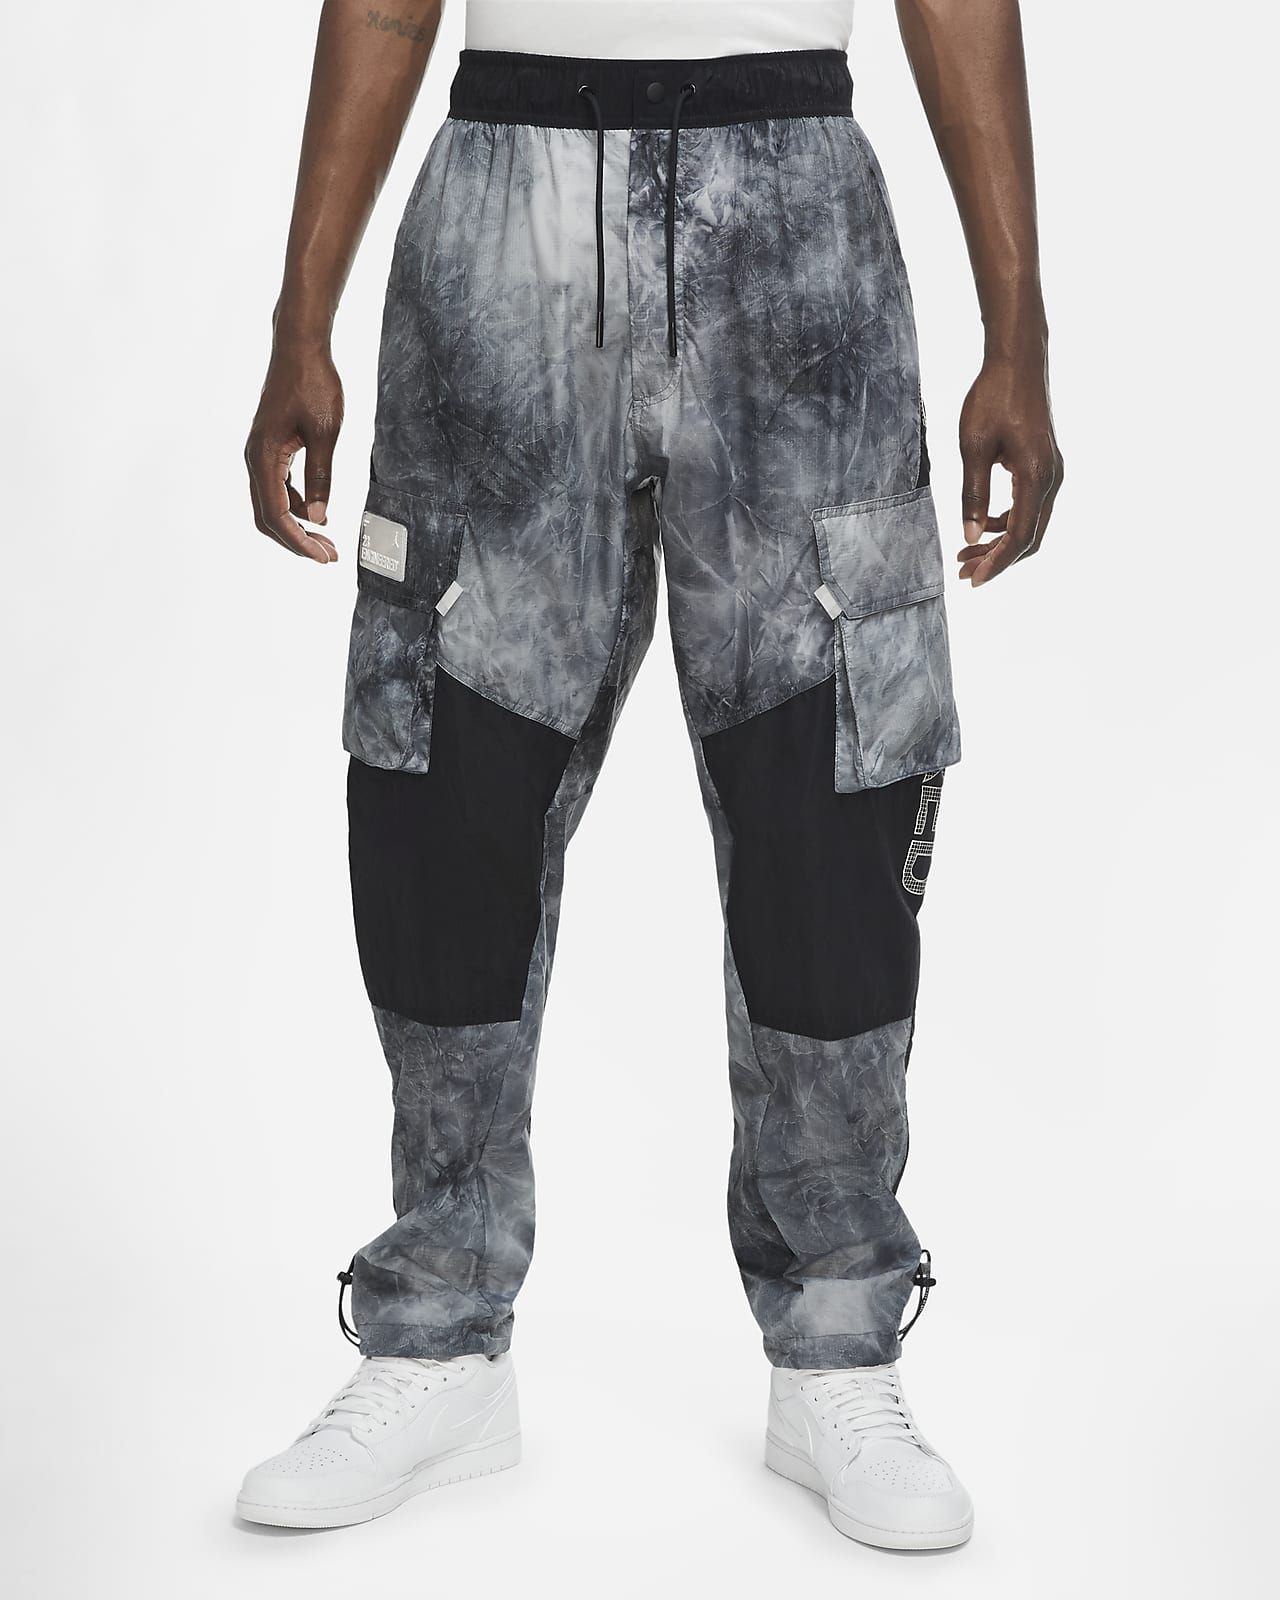 Jordan 23 Engineered Men's Printed Cargo Trousers